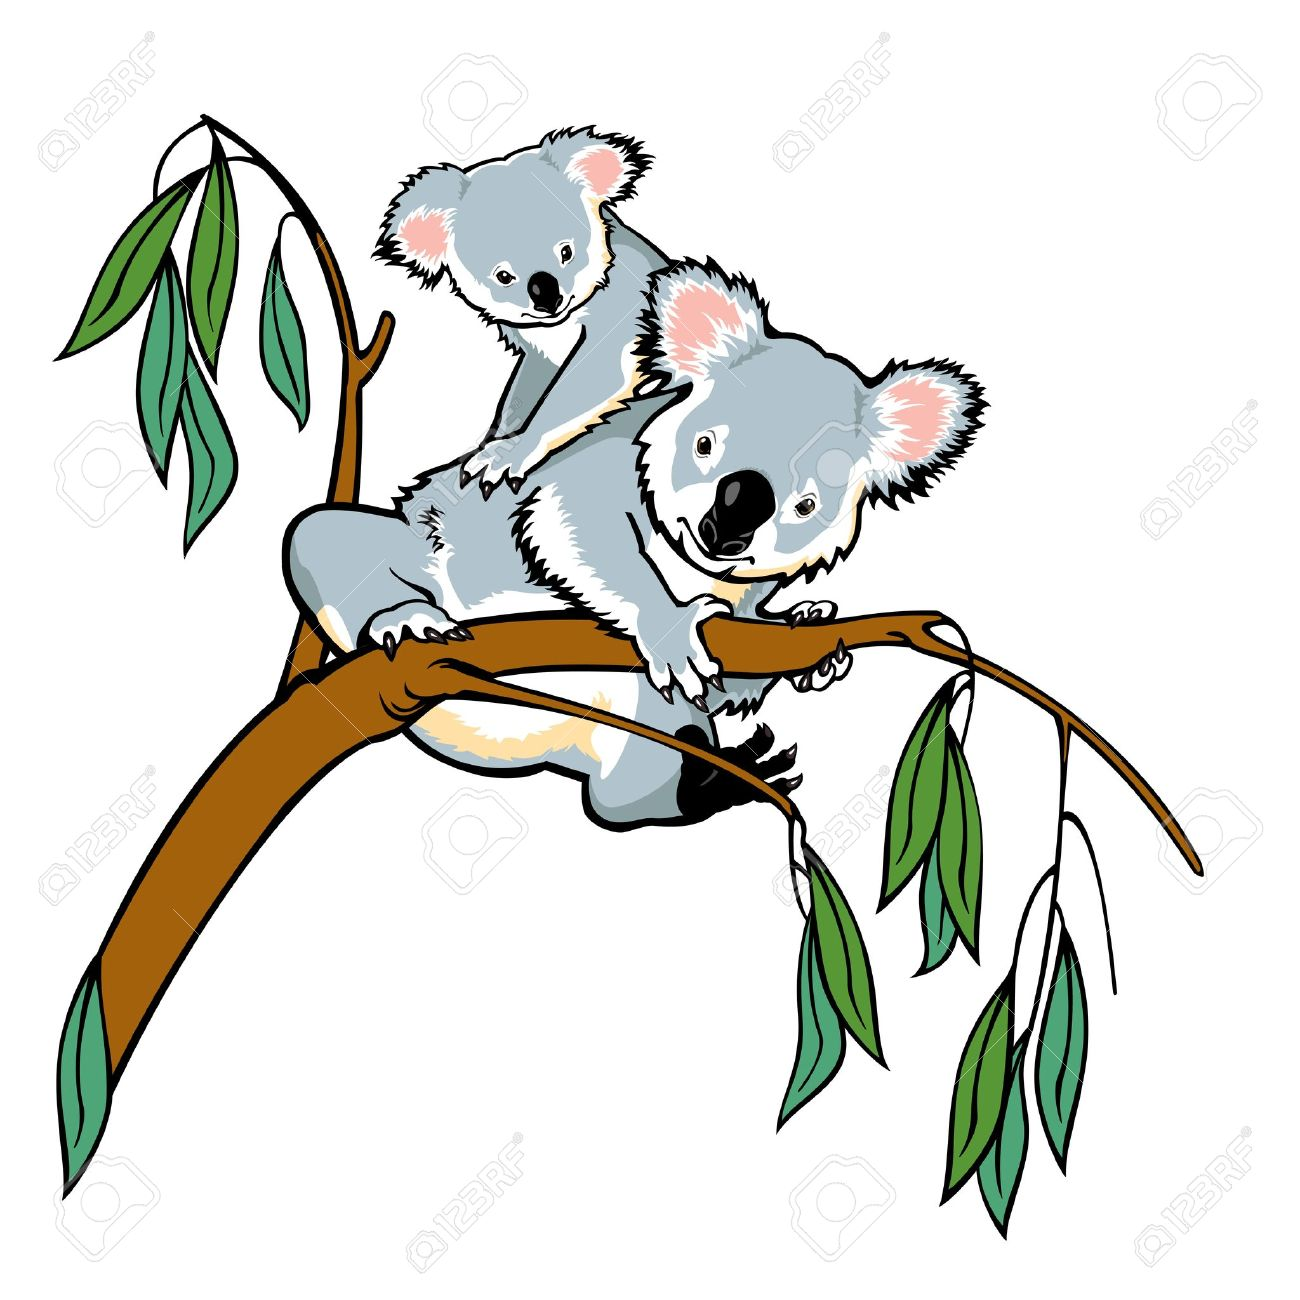 koala with joey climbing eucalyptus tree picture isolated on rh 123rf com koala clipart transparent koala clipart png